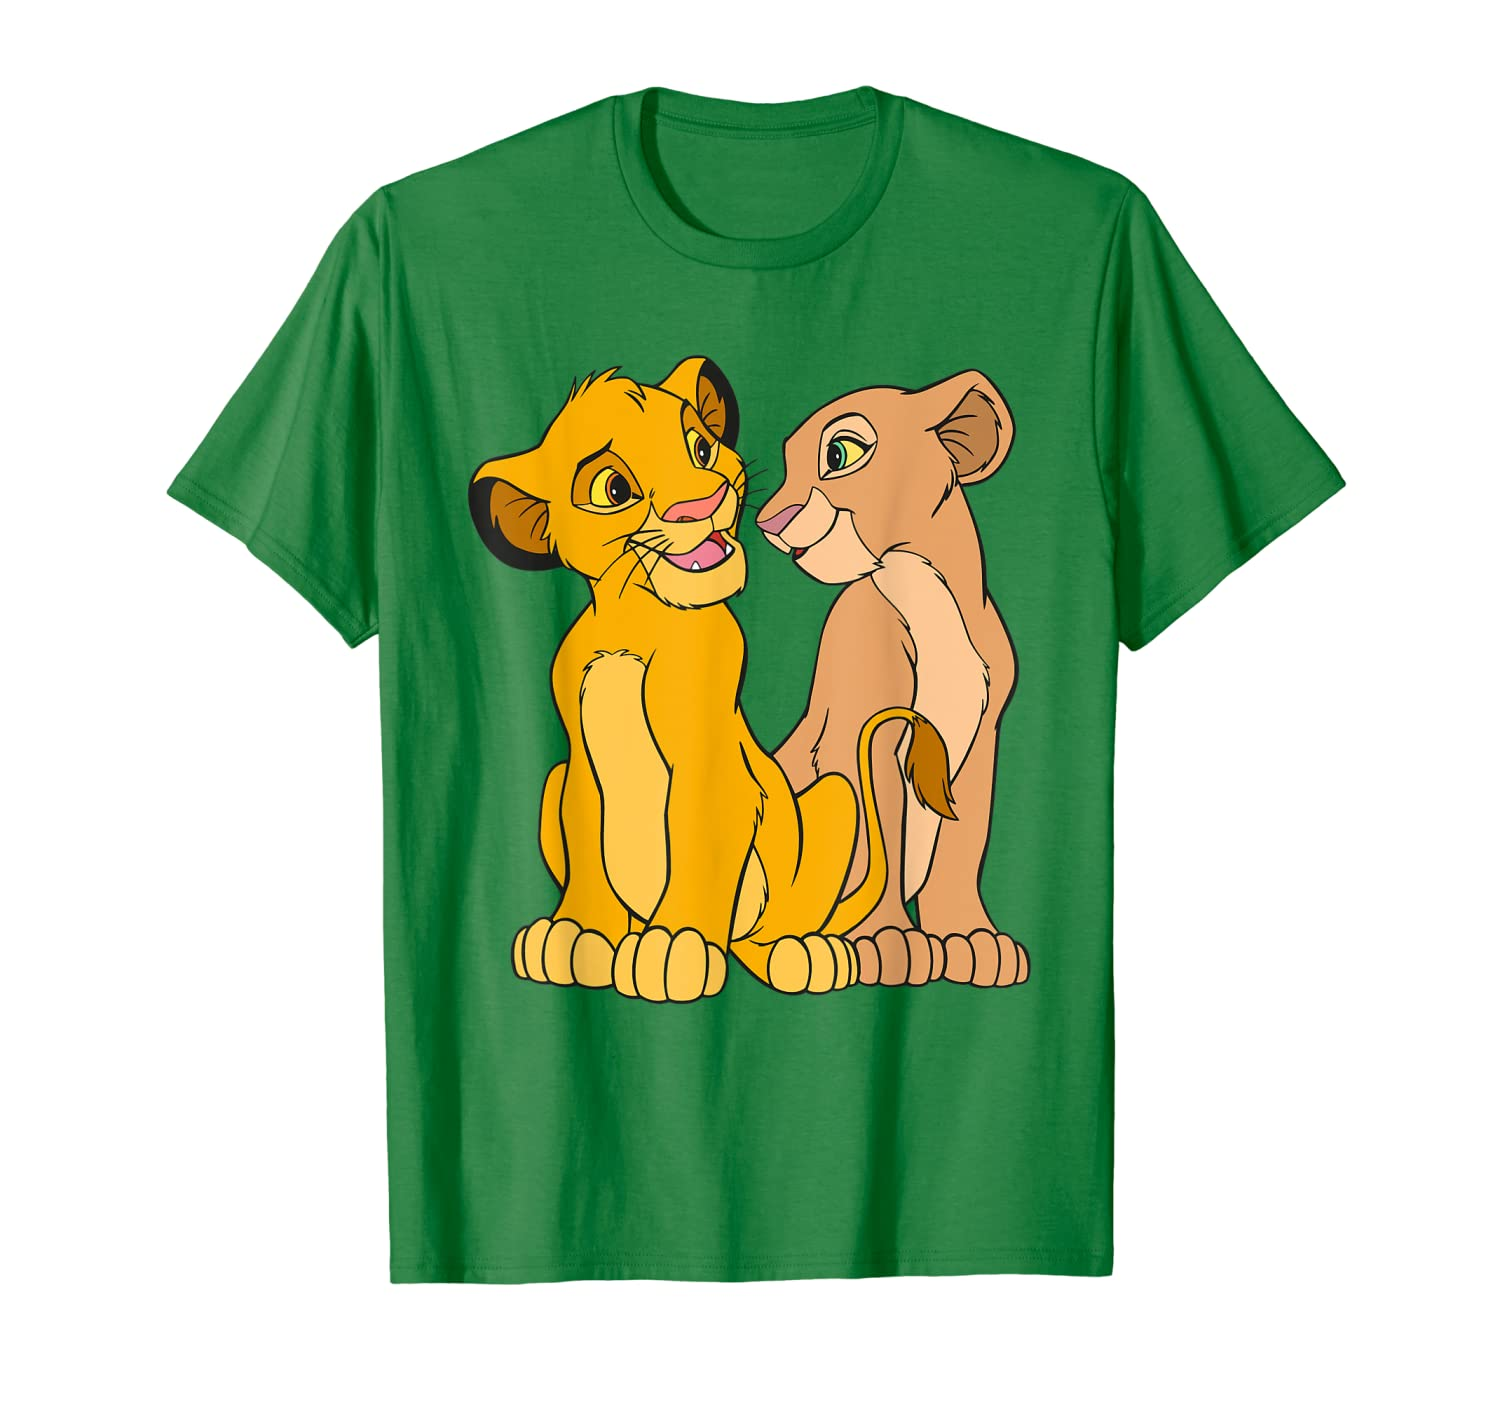 Disney The Lion King Young Simba and Nala Together T-Shirt